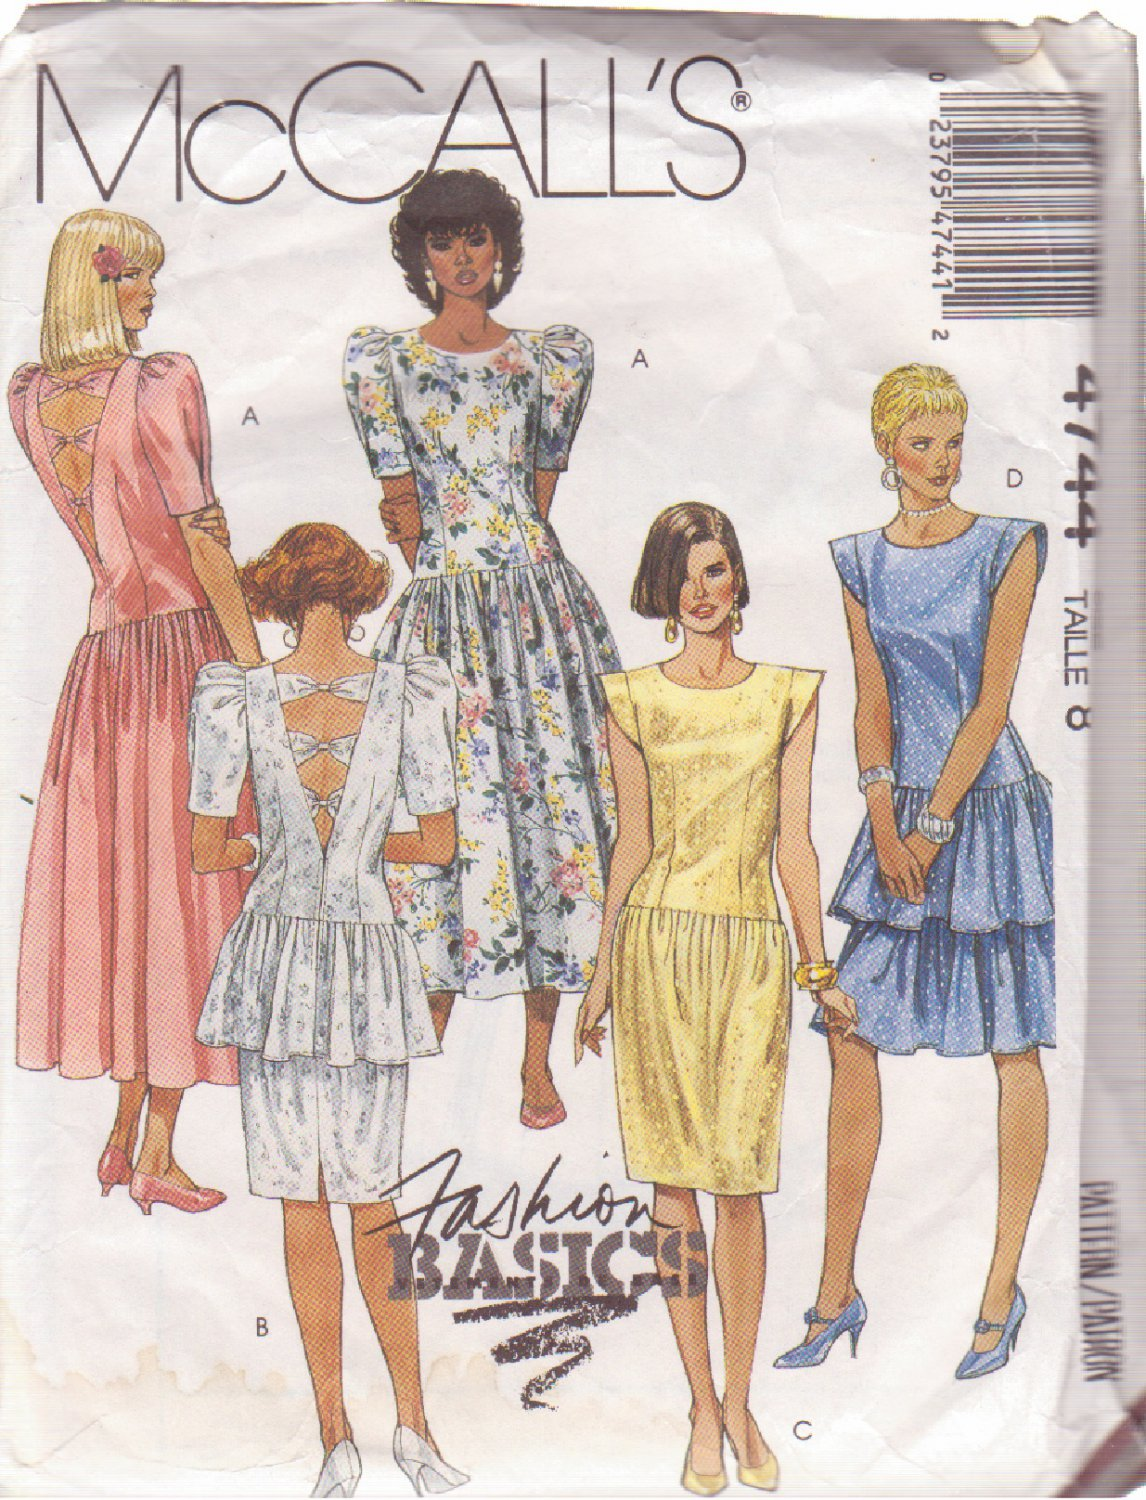 McCALL'S PATTERN 4744 SIZE 8 MISSES' DRESS IN 4 VARIATIONS